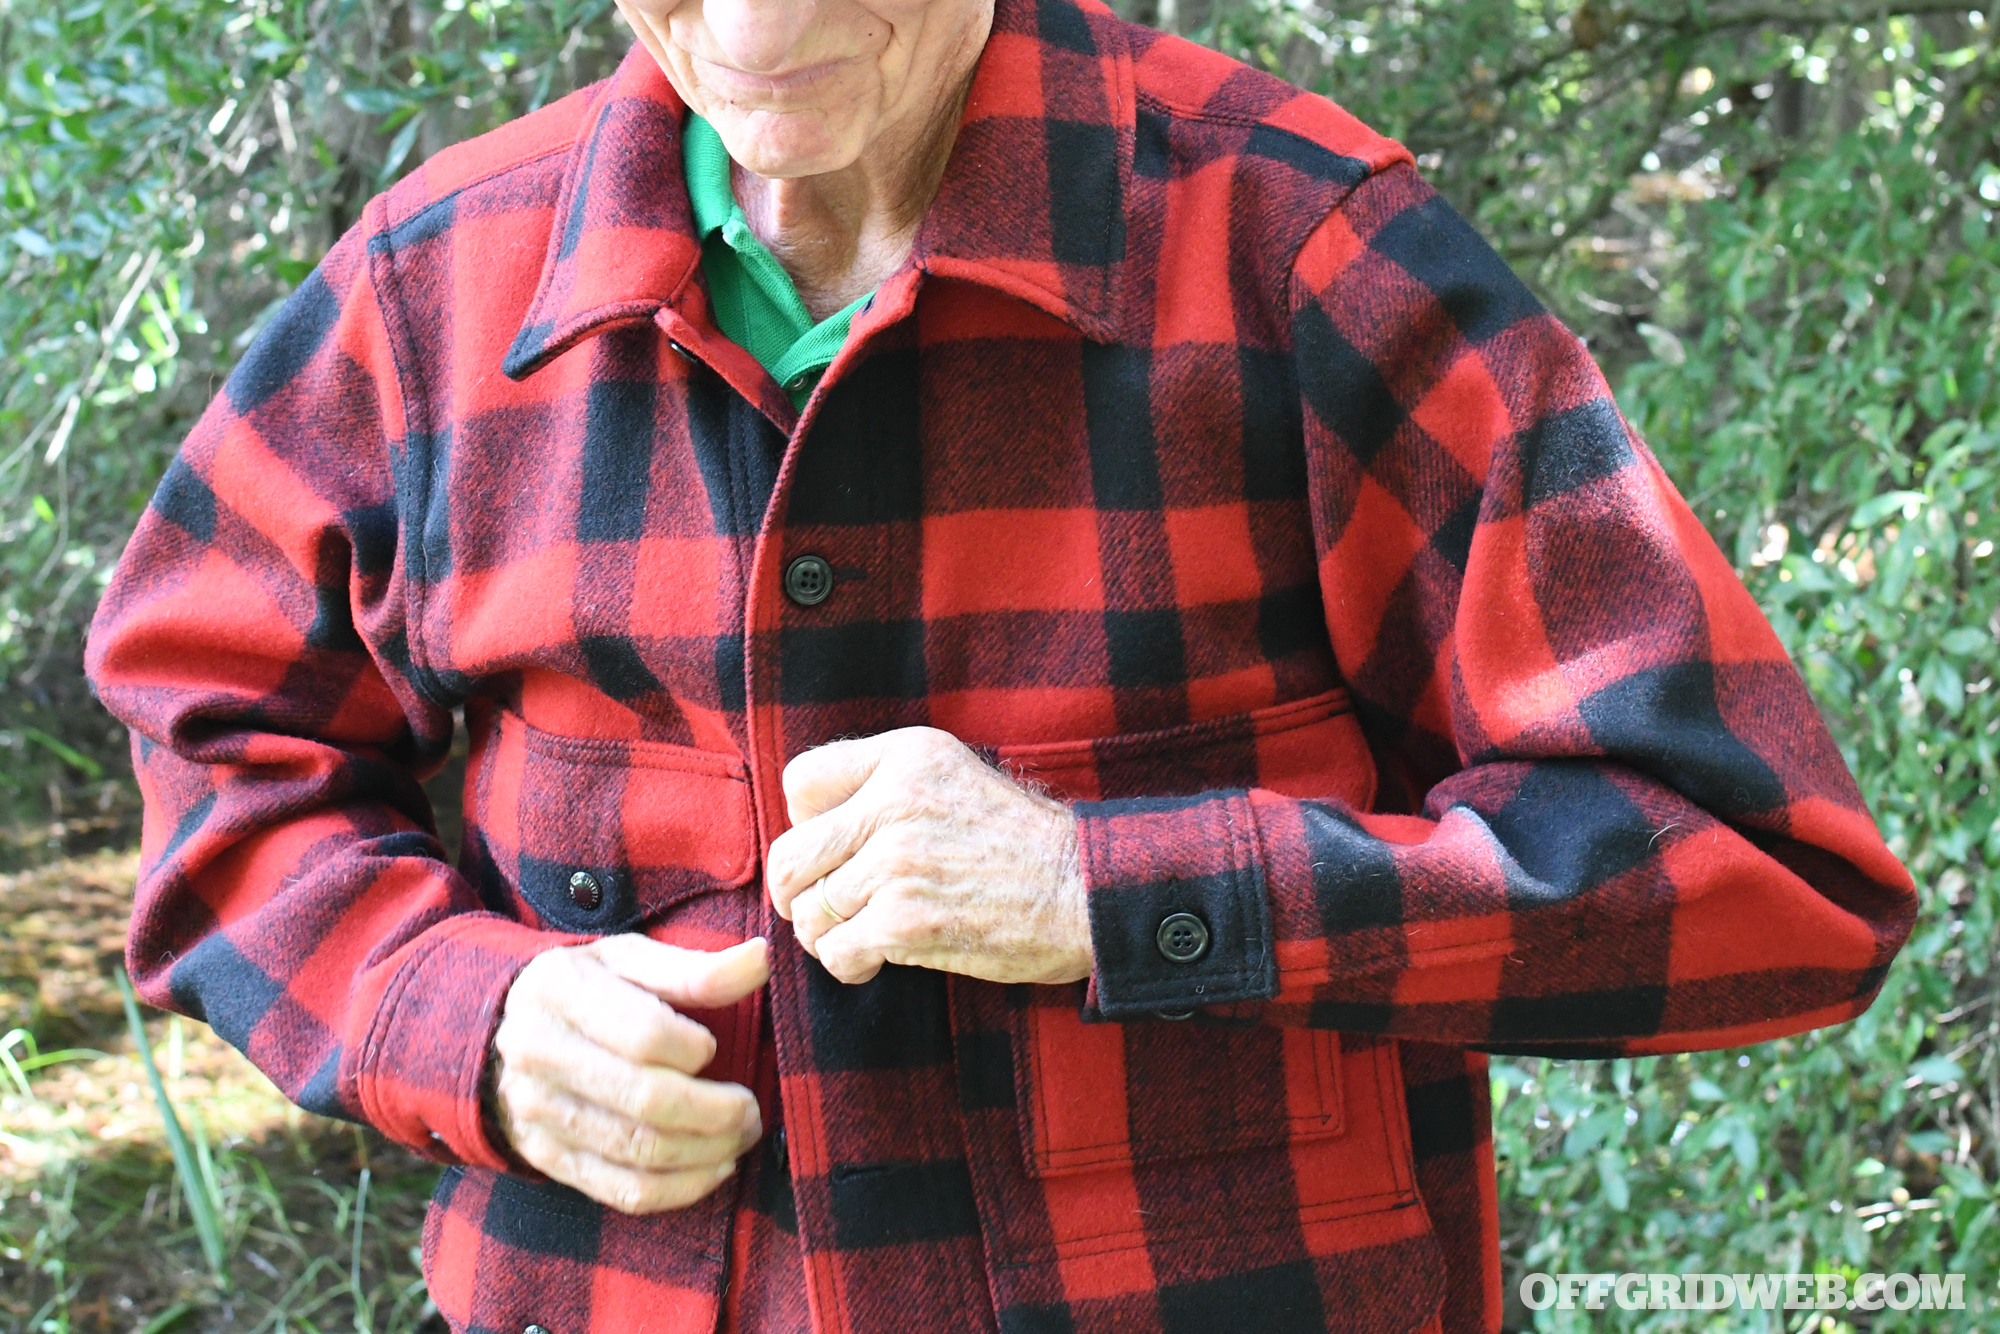 68bba8486 Review: Filson Mackinaw Cruiser Jacket | RECOIL OFFGRID